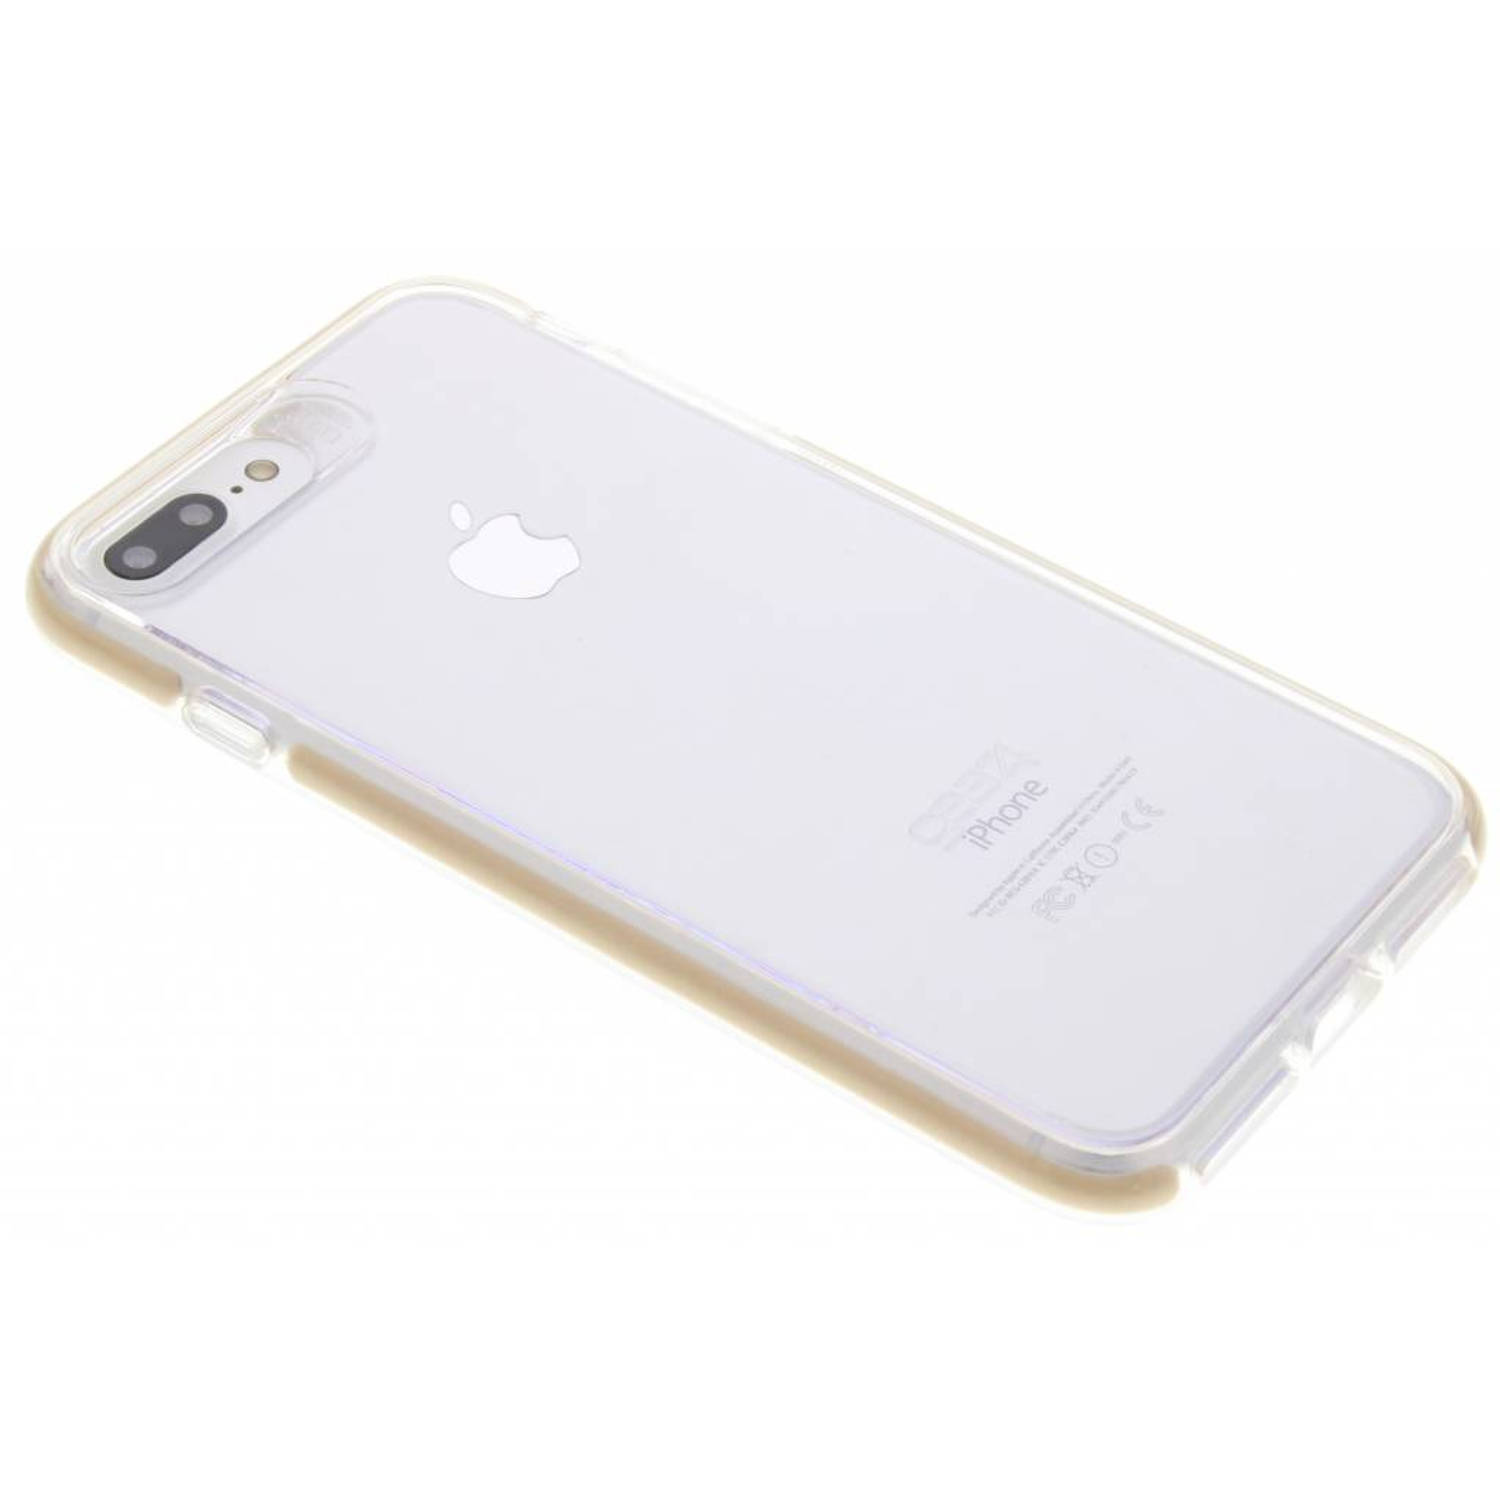 D3O Piccadilly Case voor de iPhone 8 Plus / 7 Plus - Goud